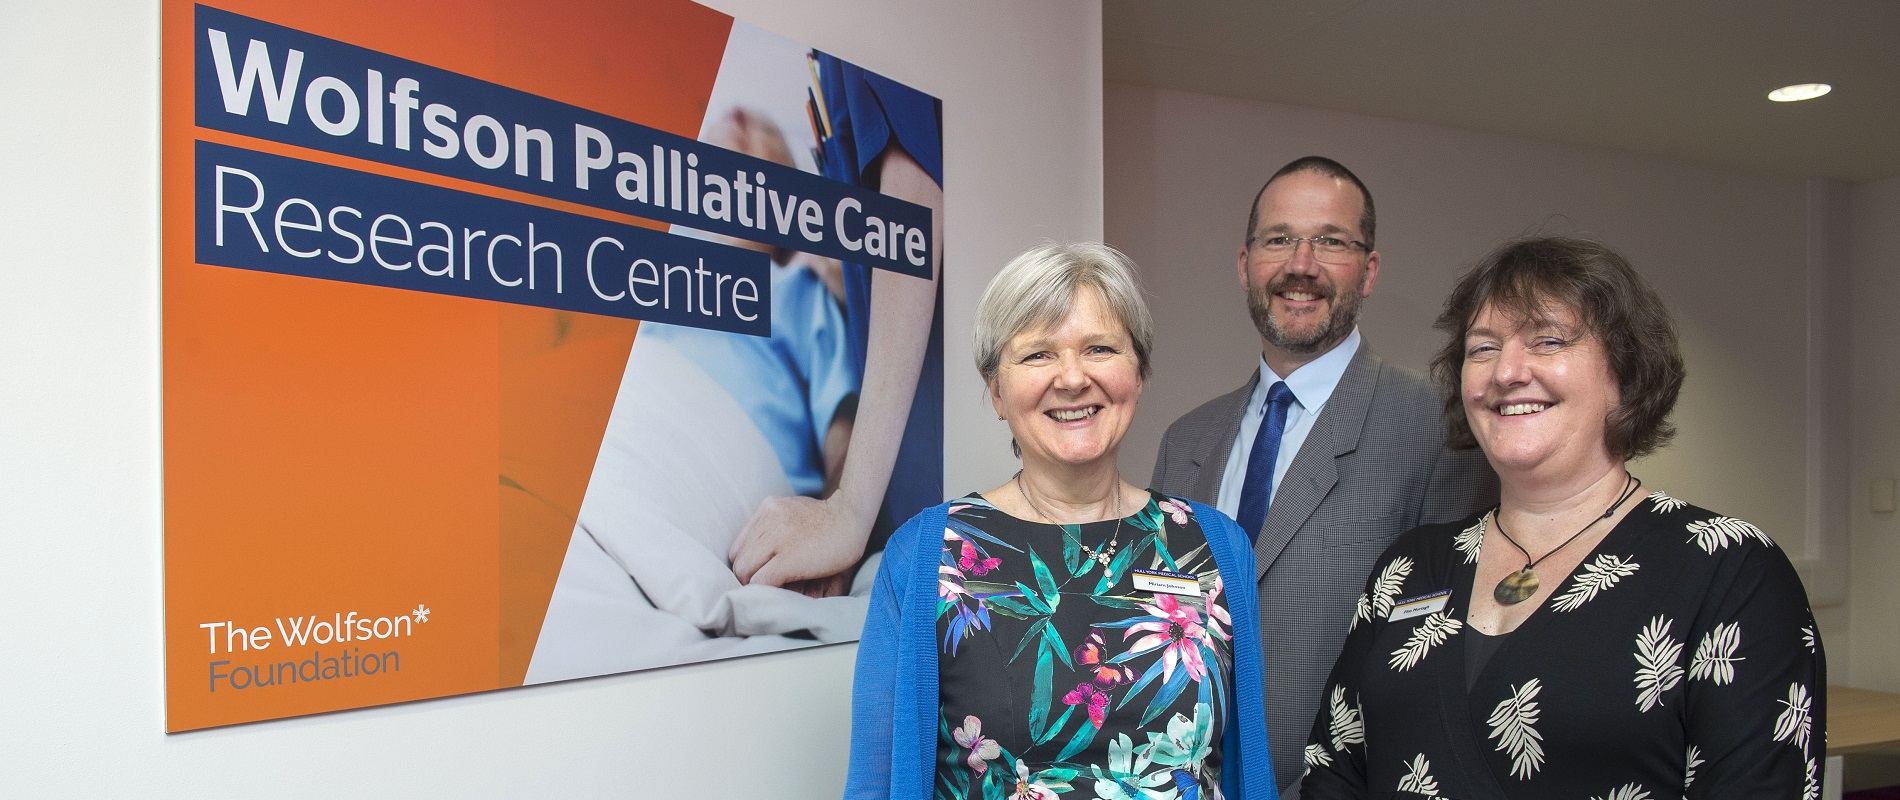 wolfson palliative care